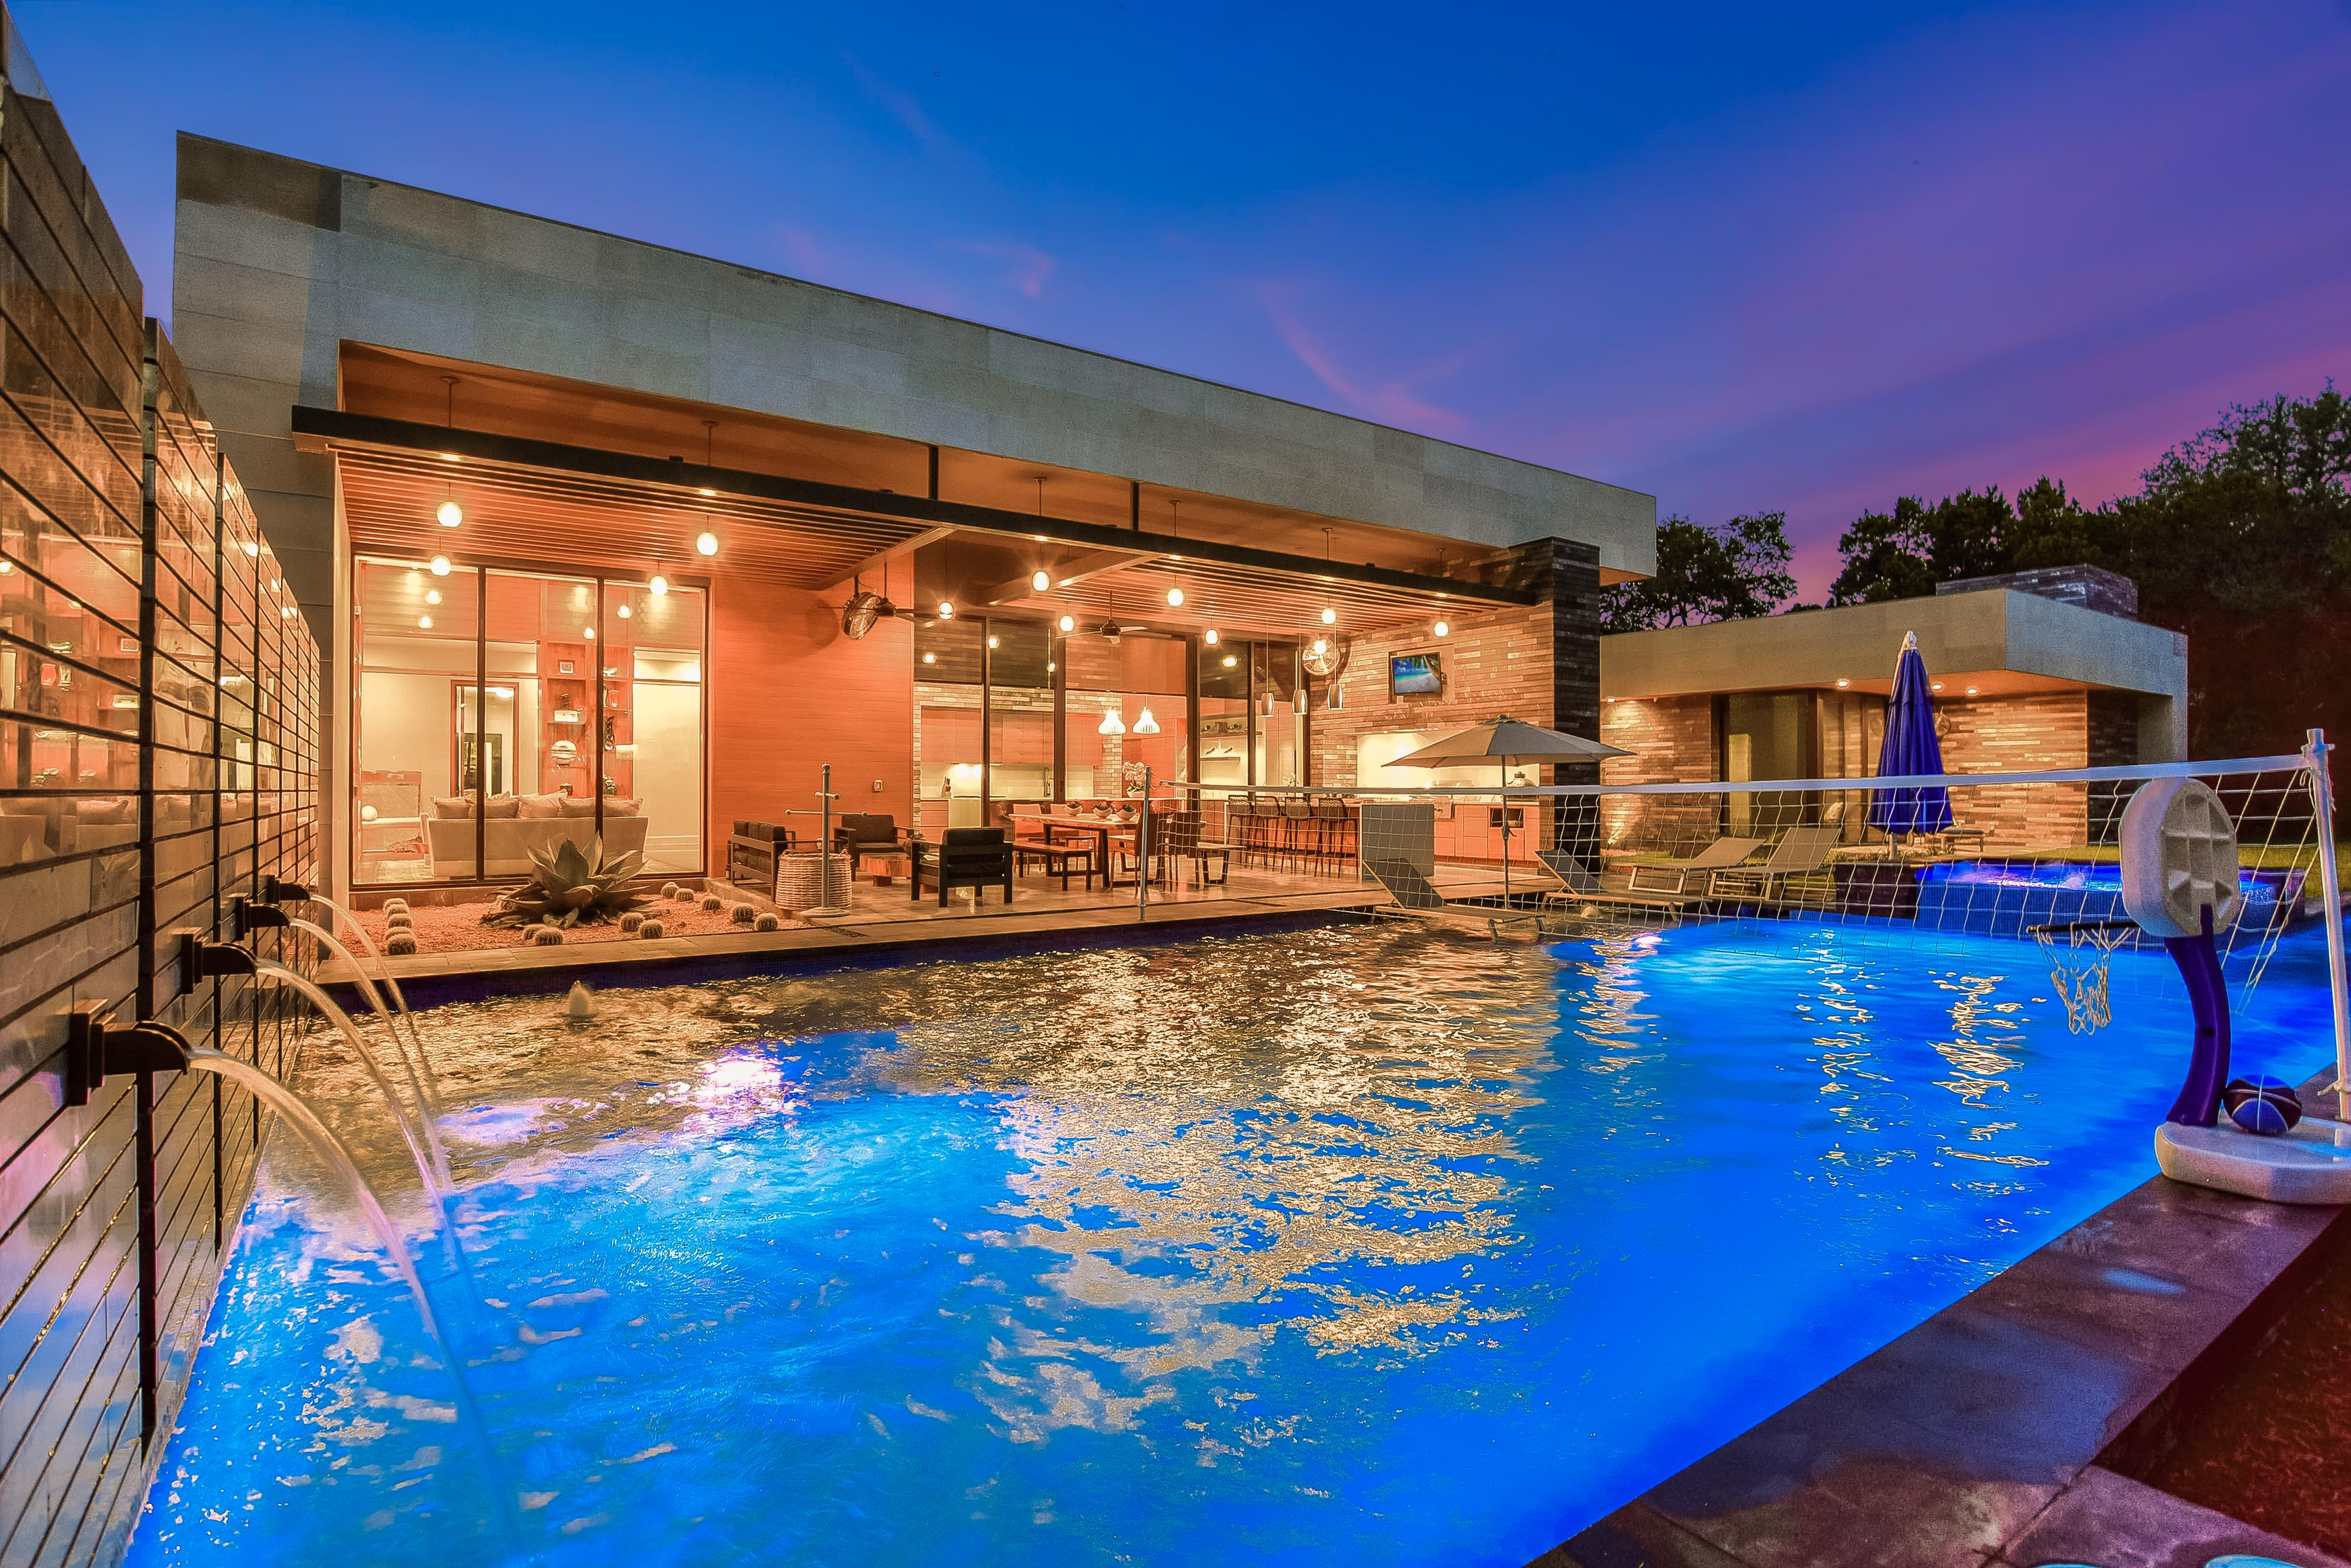 Incredible pool with multiple water features, a pool volleyball net, jacuzzi and lap pool.  Jump in and enjoy this paradise!